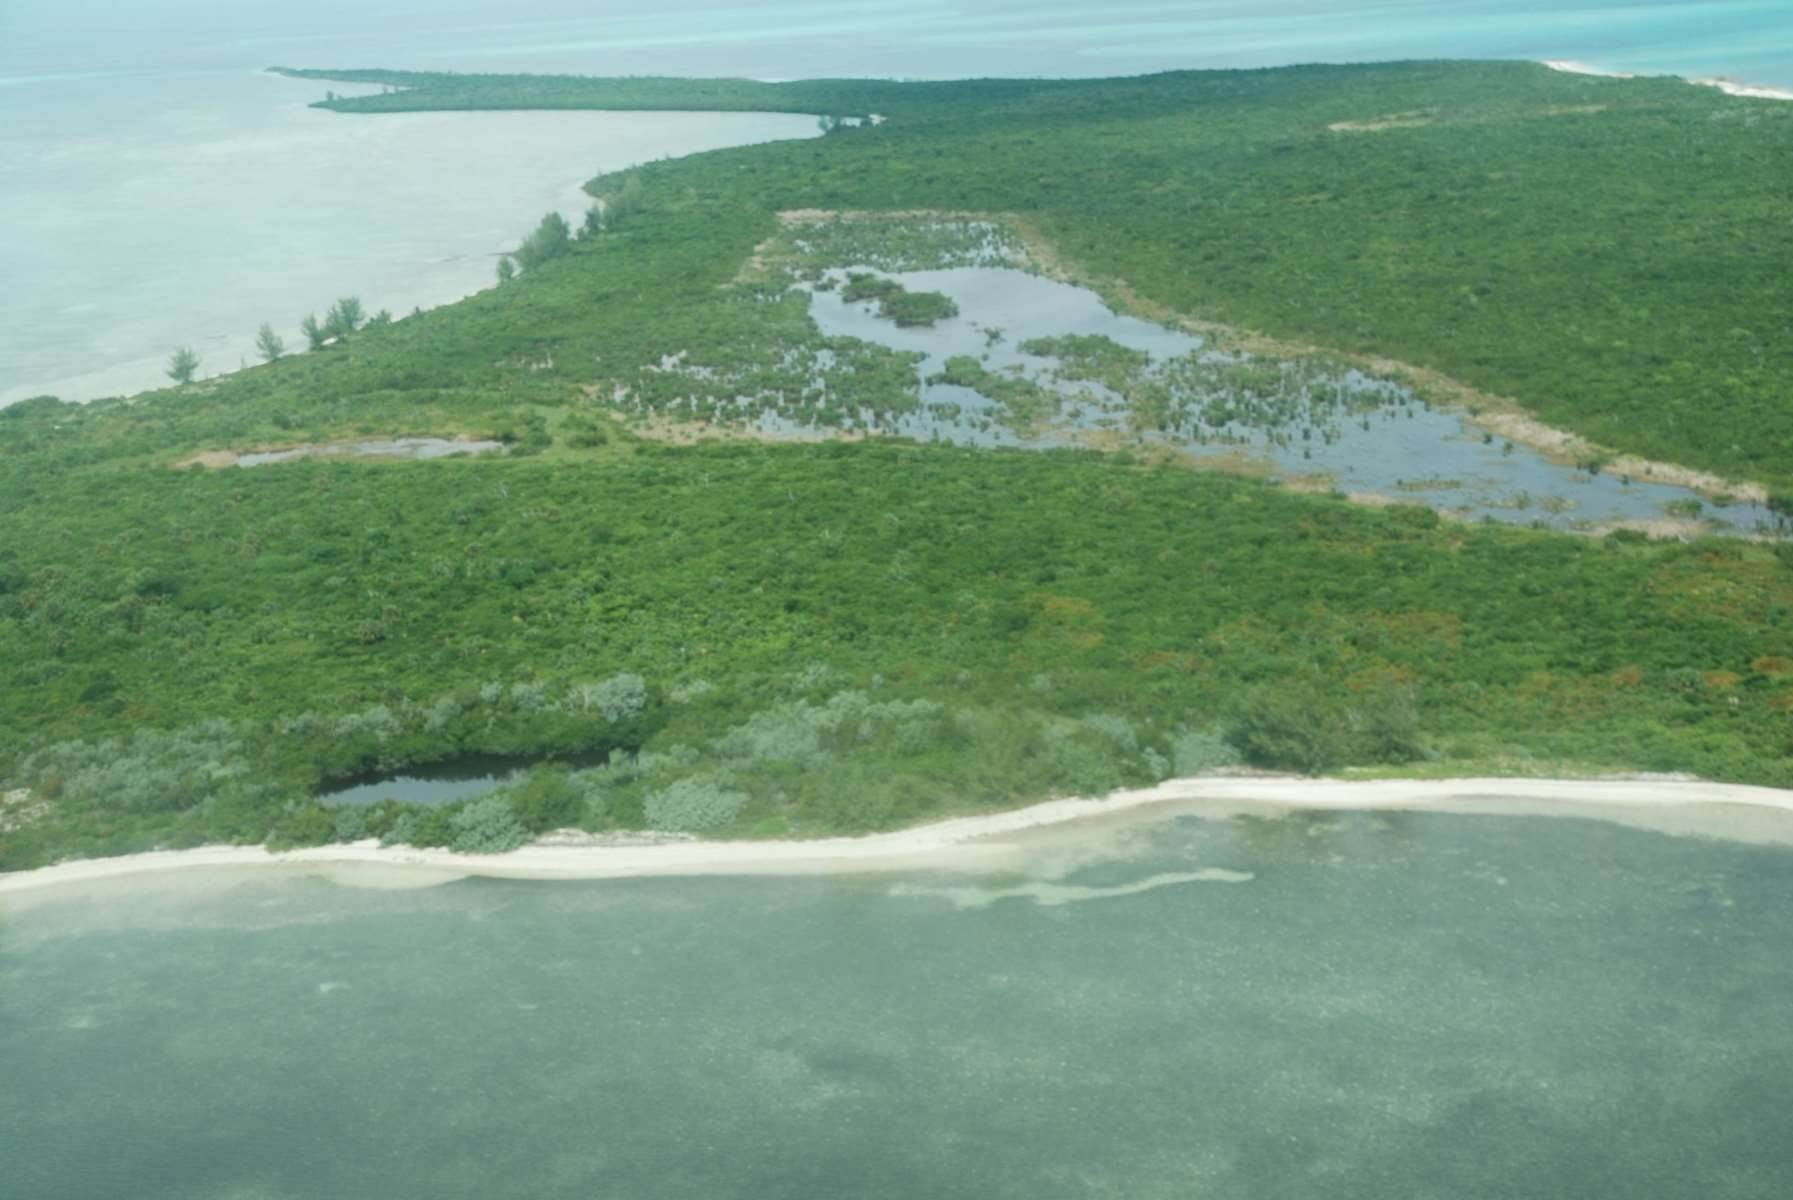 8. Private Islands por un Venta en Large Private Island in Abaco with approved development Plans - MLS 42074 Abaco, Bahamas